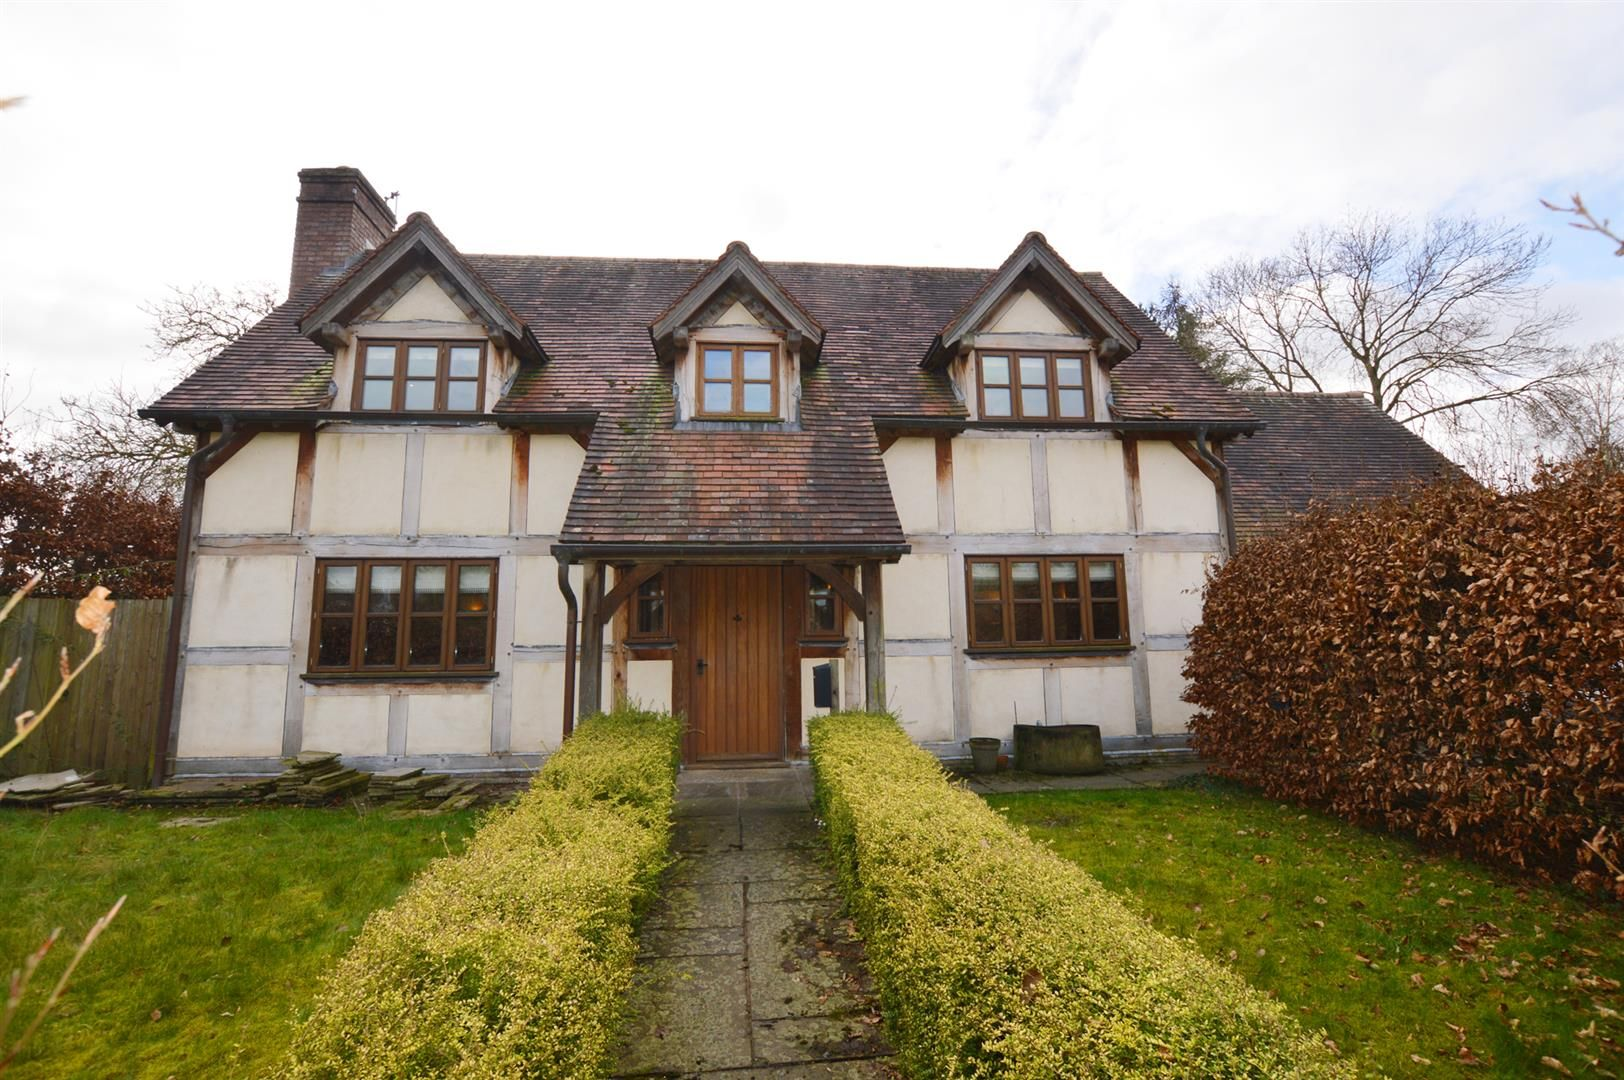 3 bed detached for sale in Pembridge, HR6